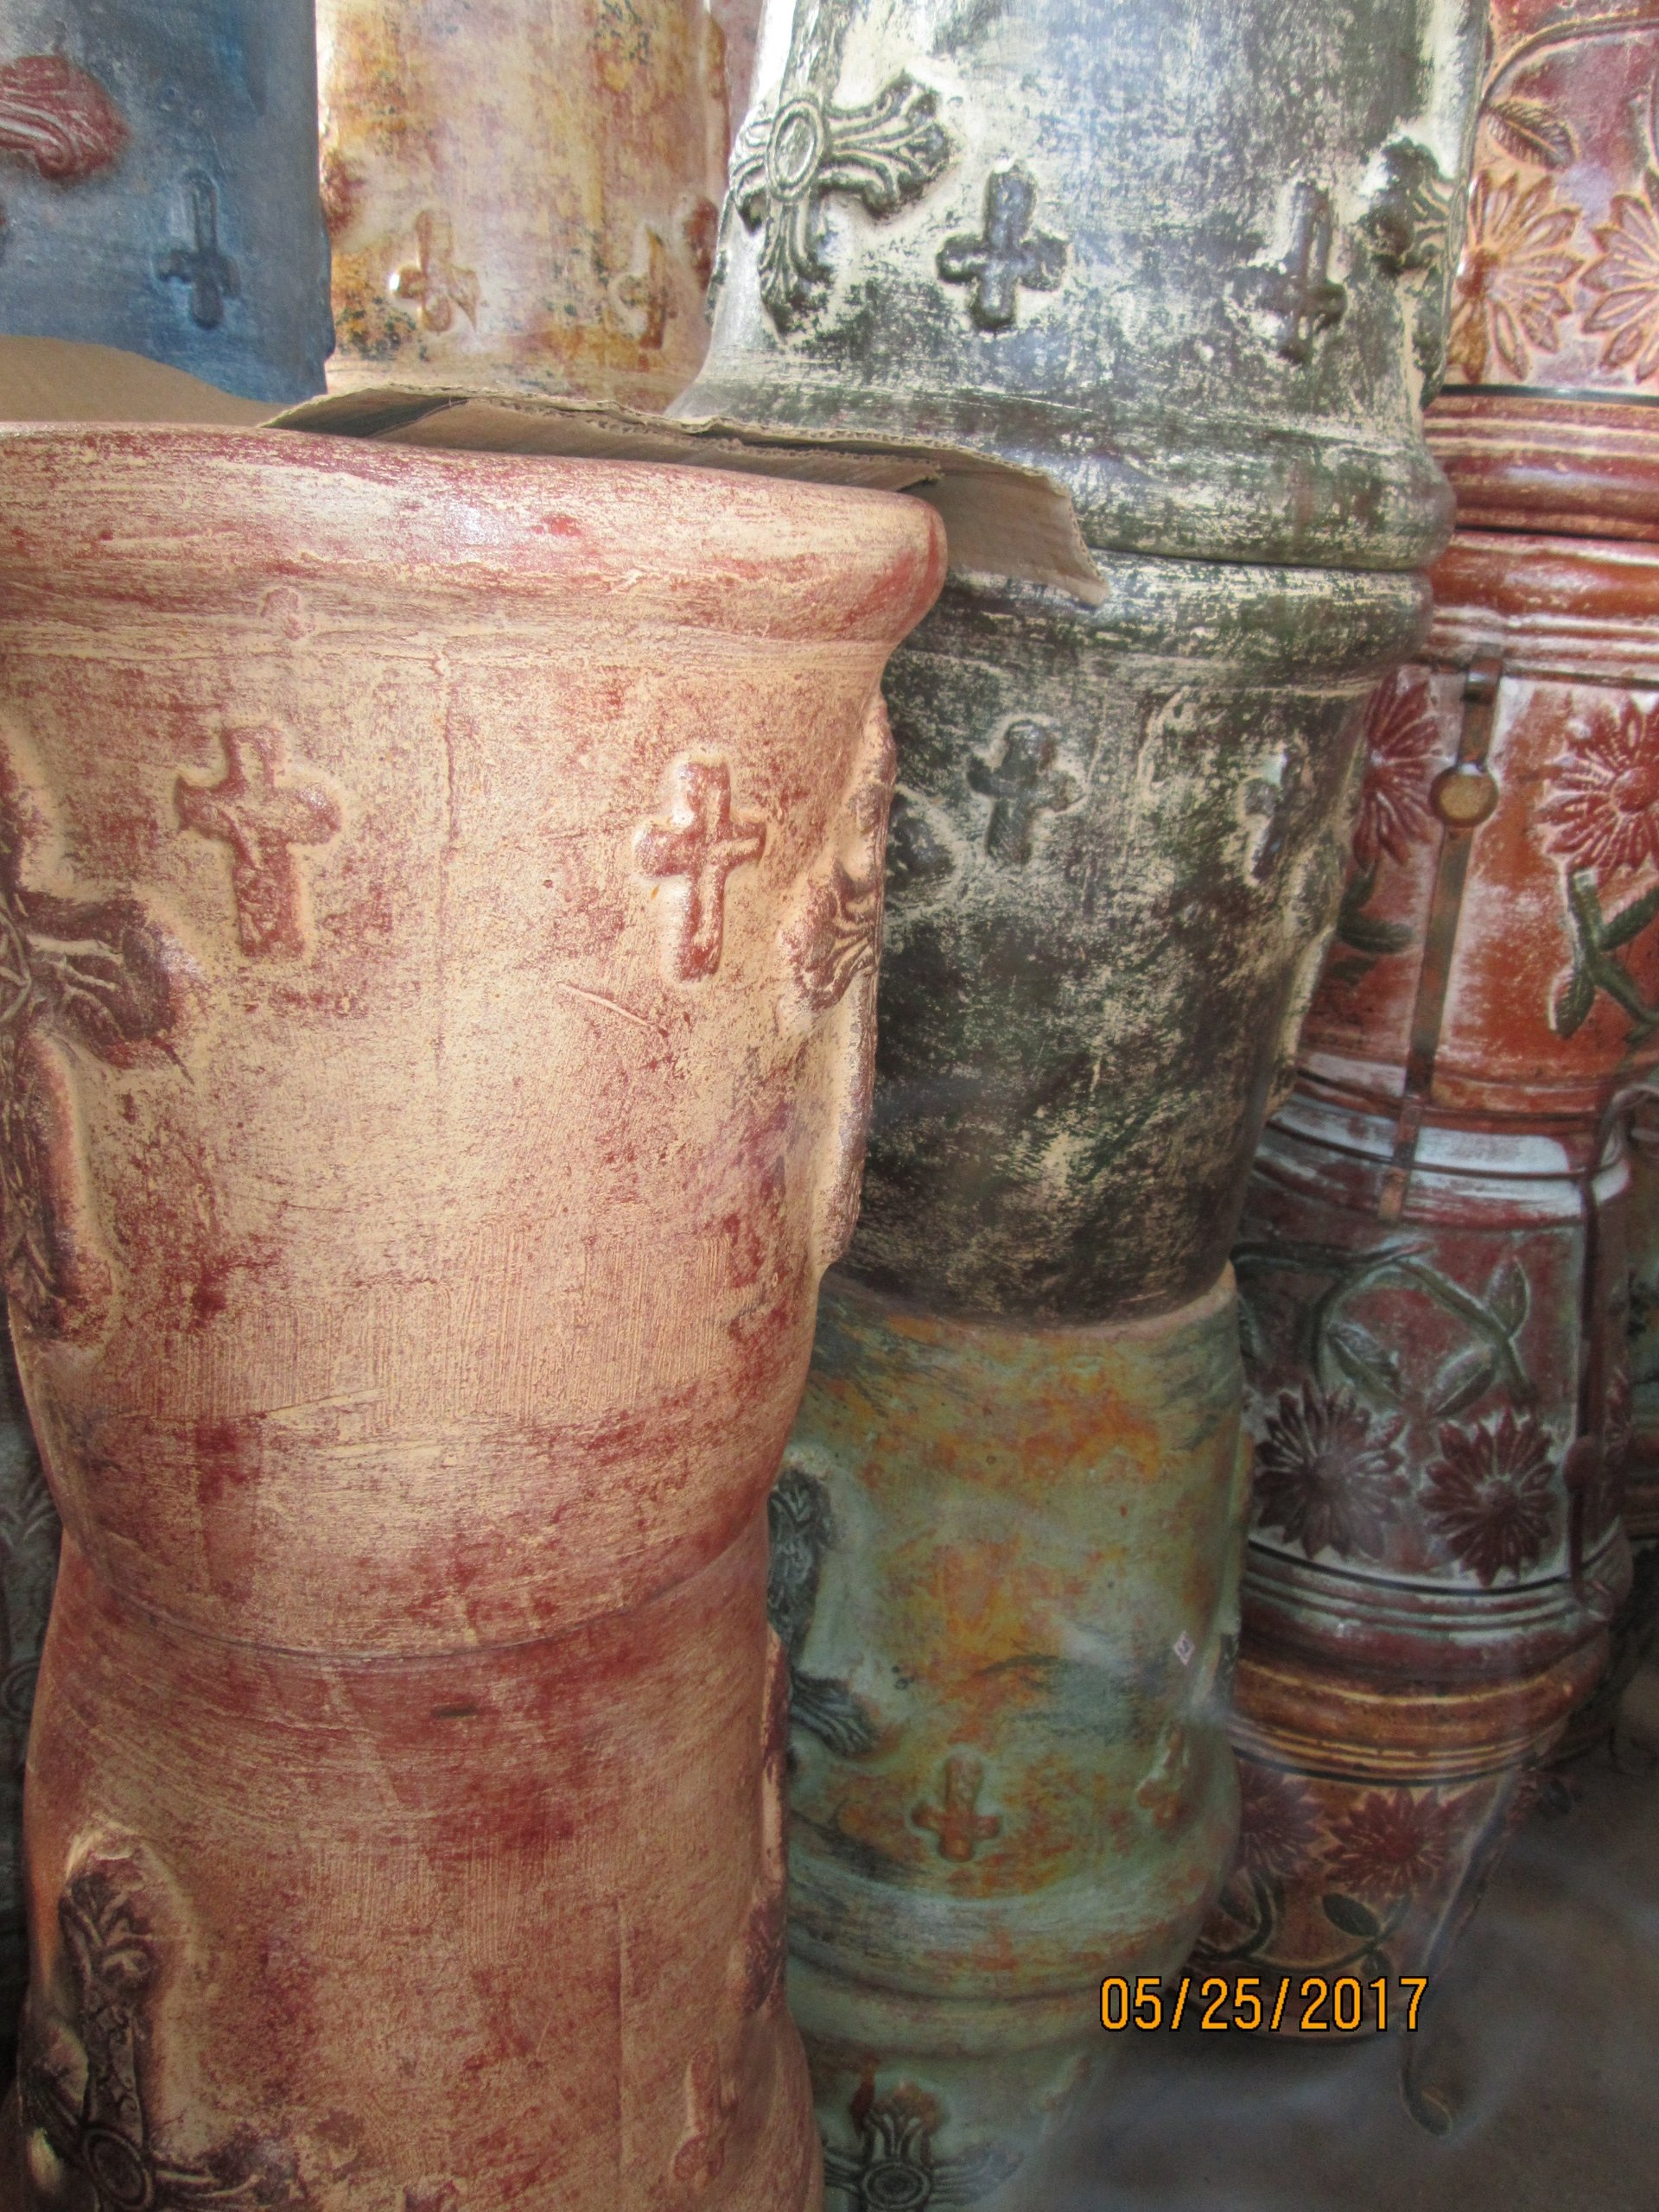 Diana's Import Authentic Mexican Pottery & Handicrafts